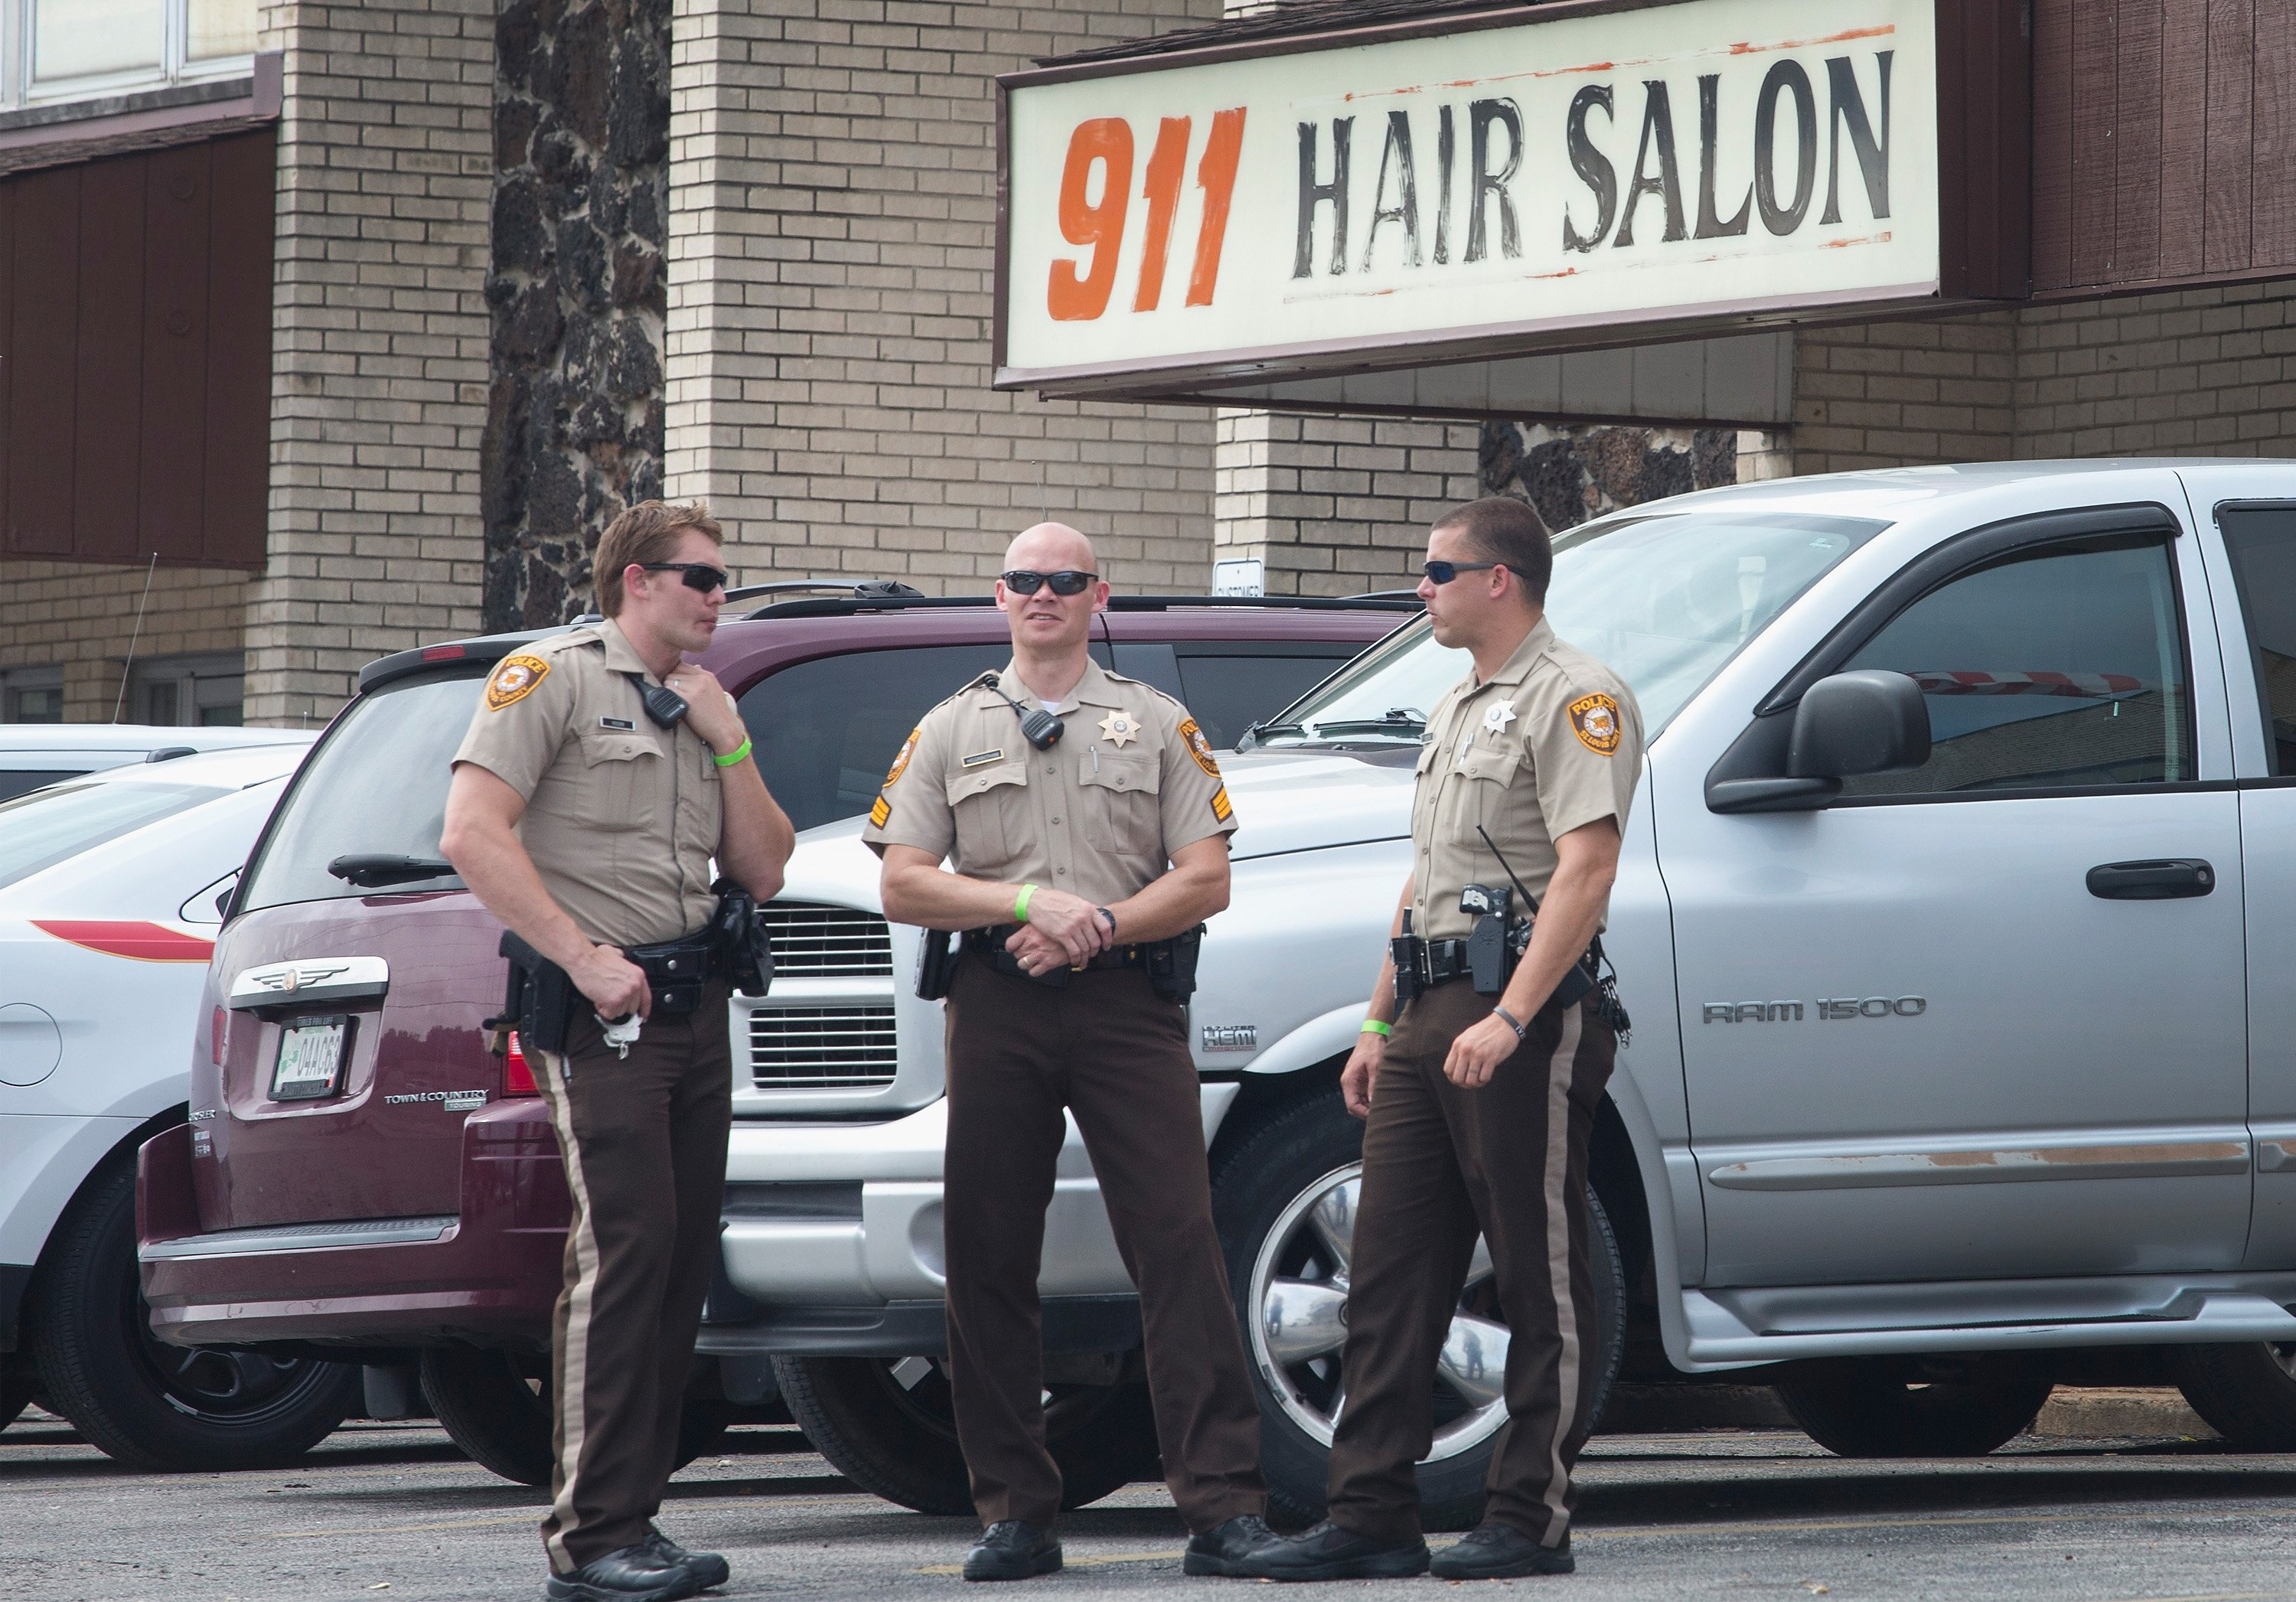 Police stand guard outside a hair salon in Ferguson